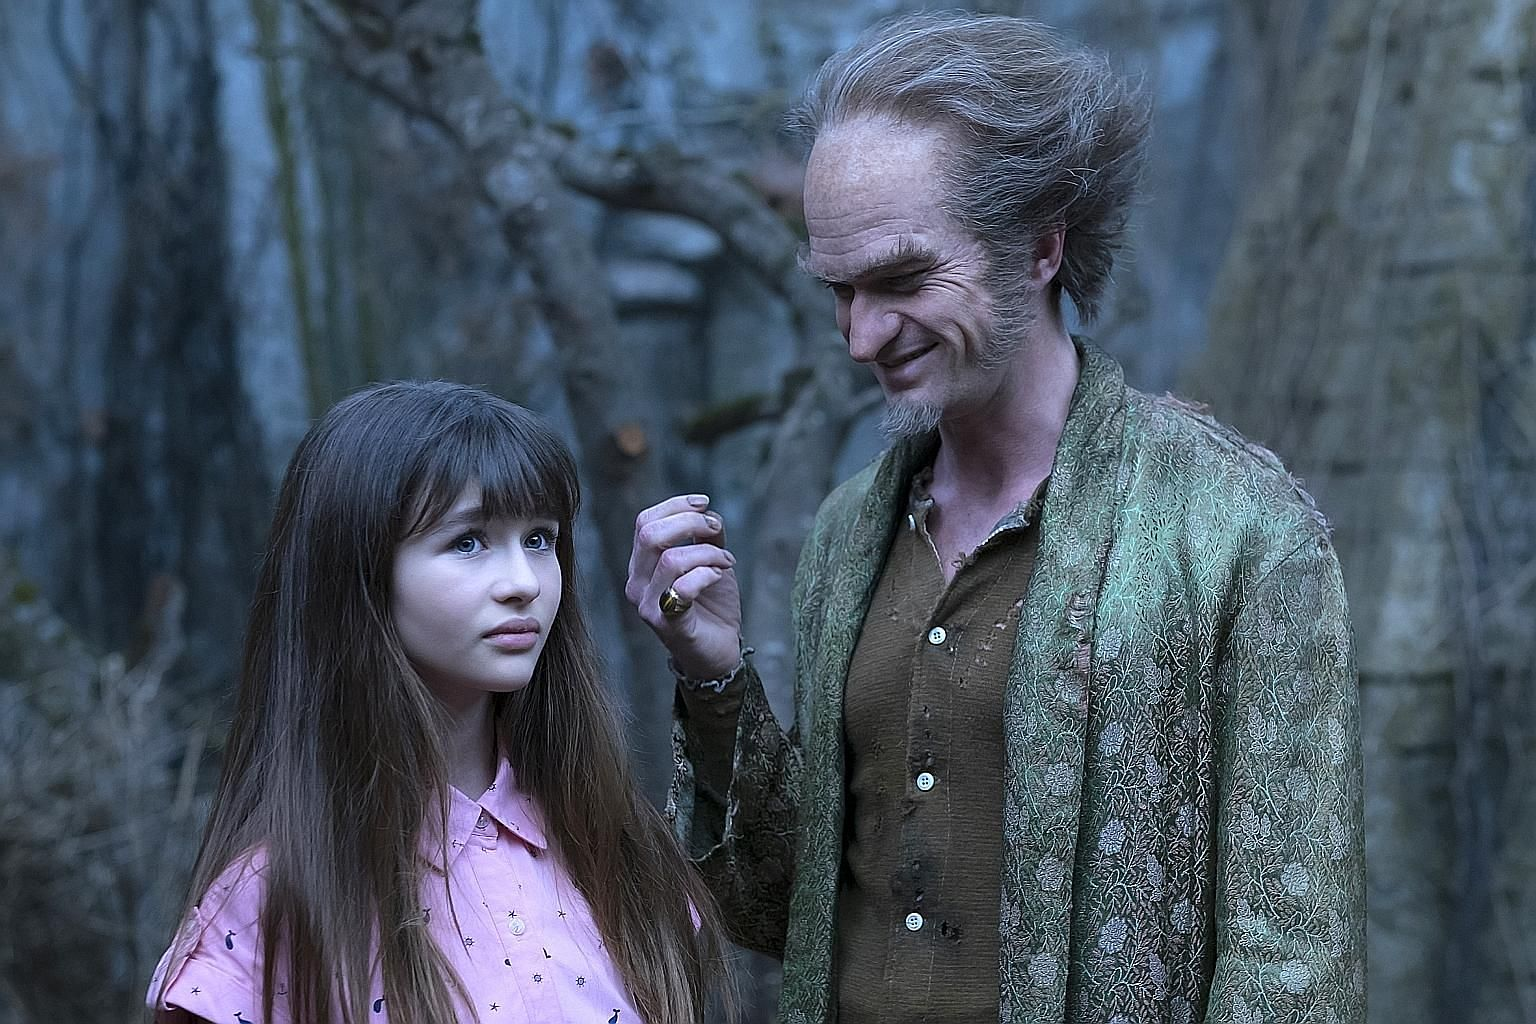 Neil Patrick Harris, who plays the devious Count Olaf, with Malina Weissman, one of the orphans in A Series Of Unfortunate Events.